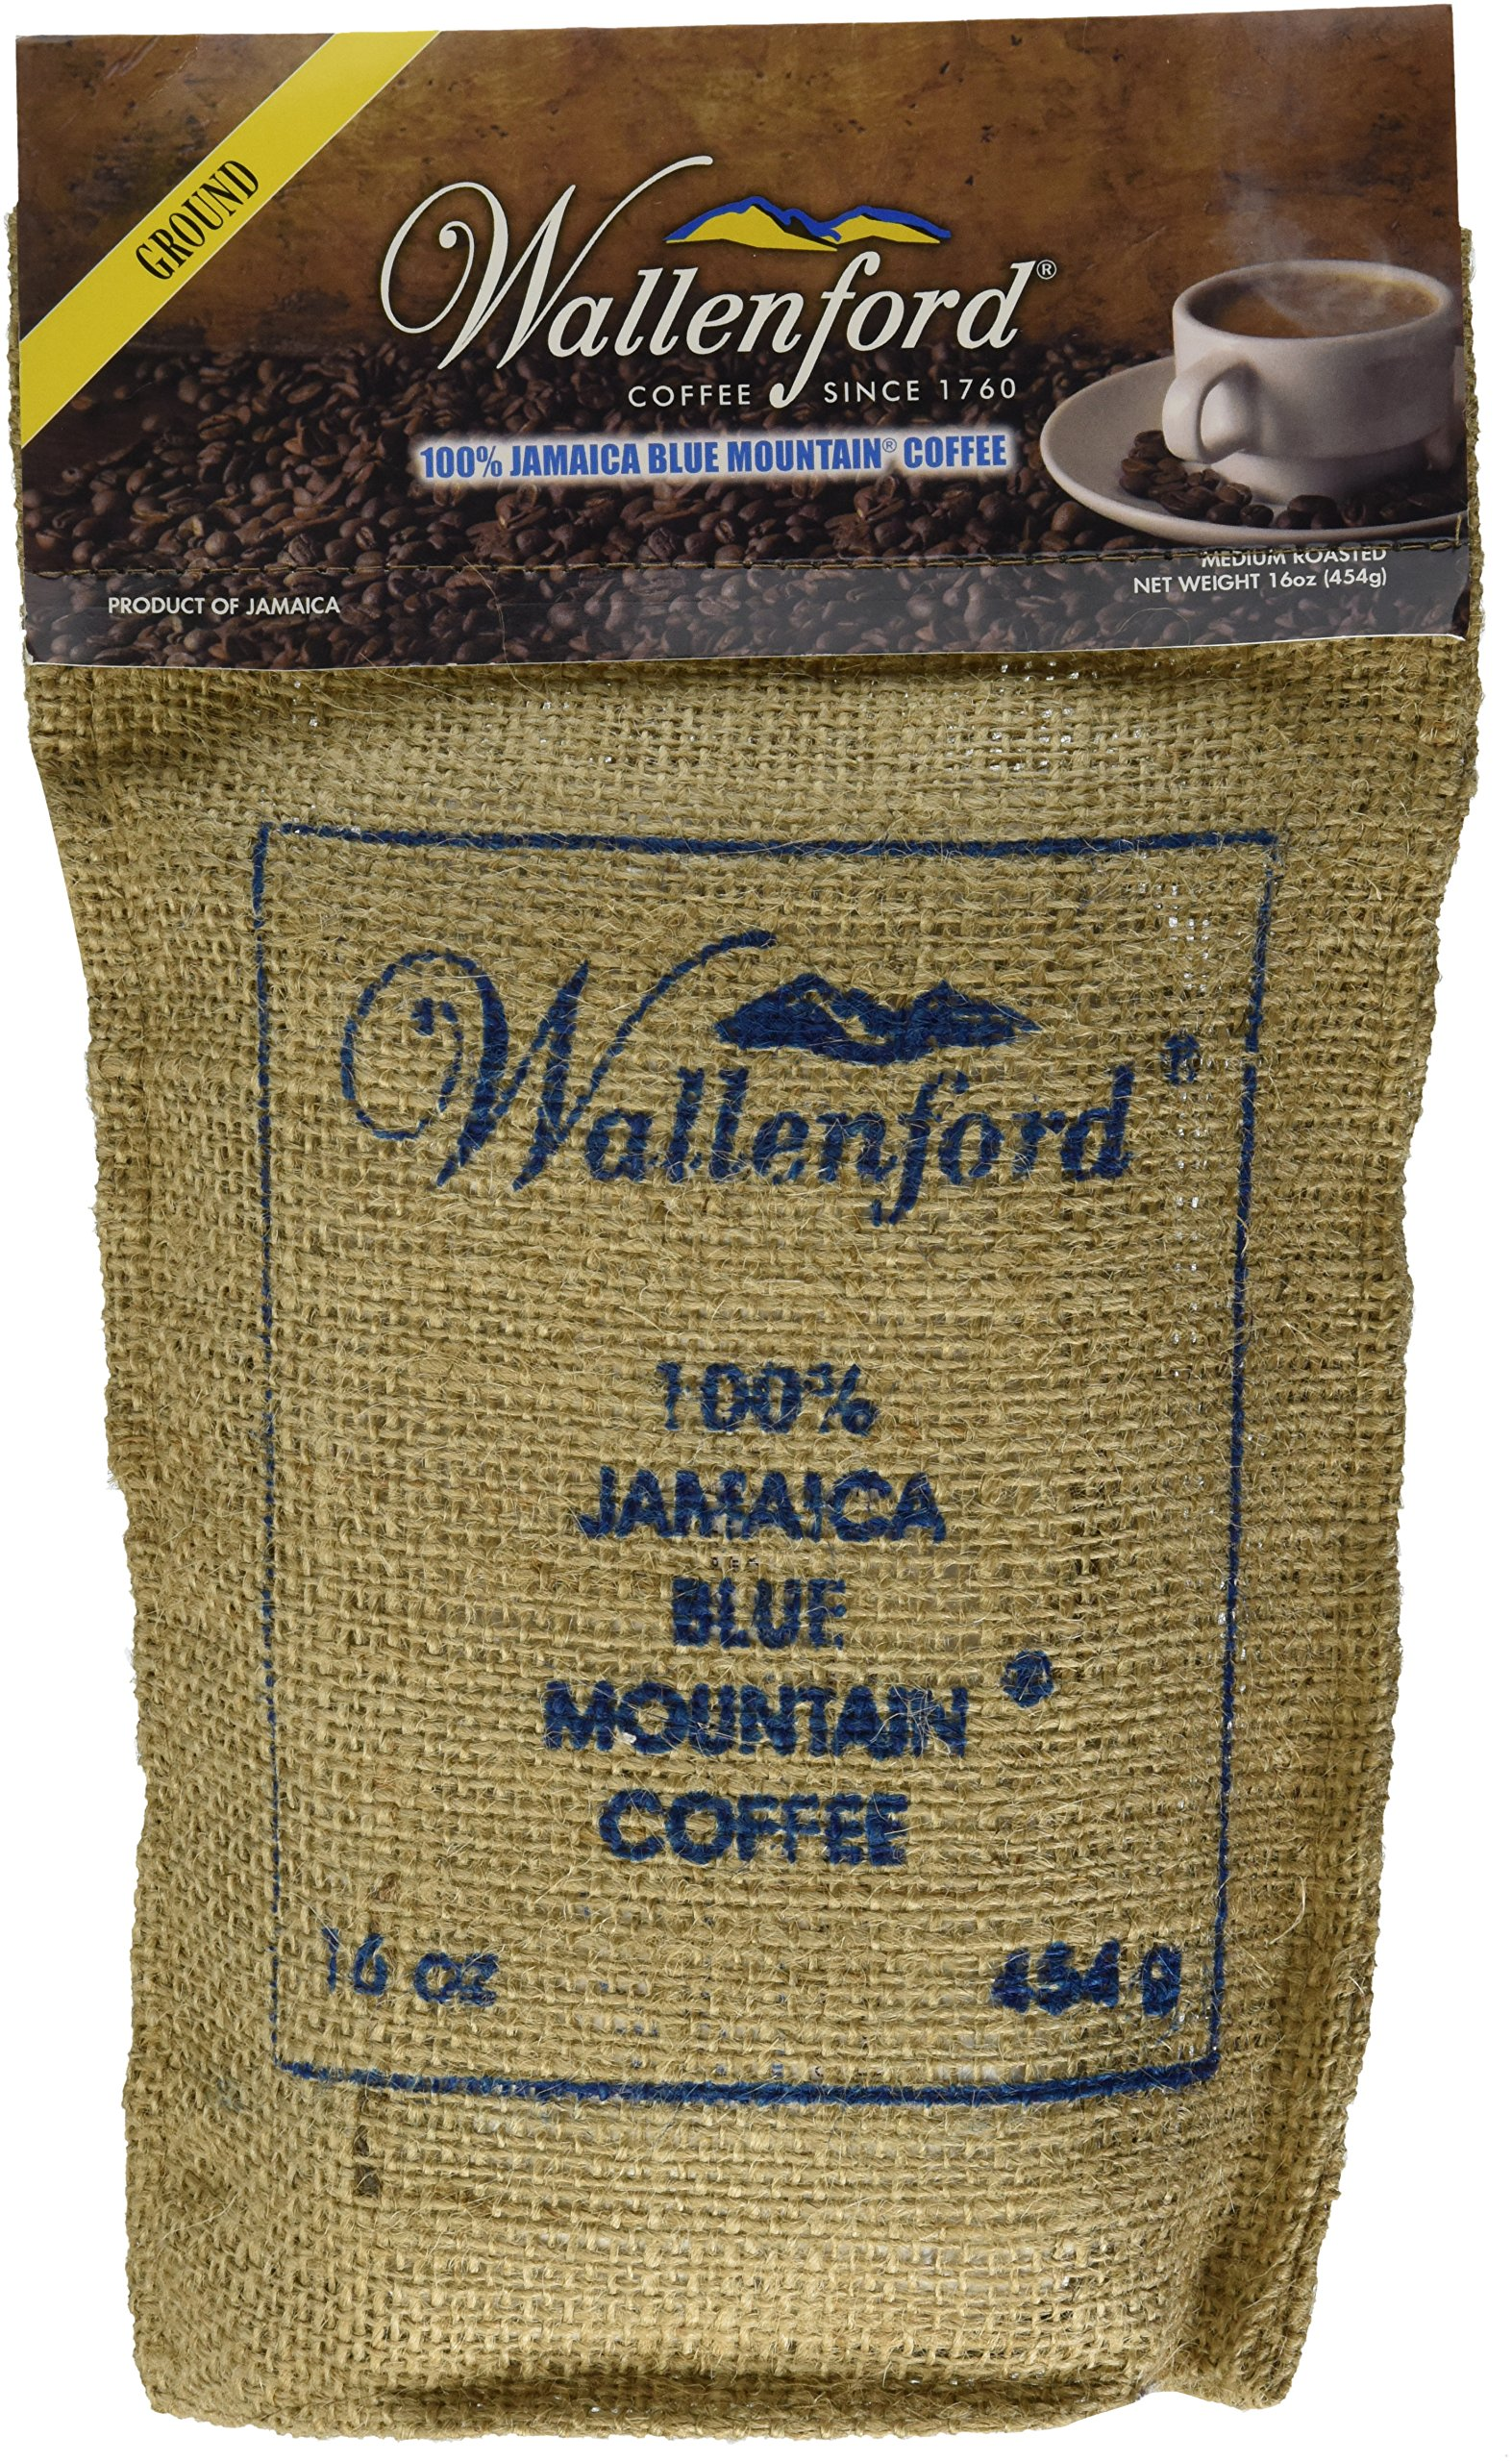 Roasted and Ground 100% Jamaica Blue Mountain Coffee, 16oz (1lb) Bag